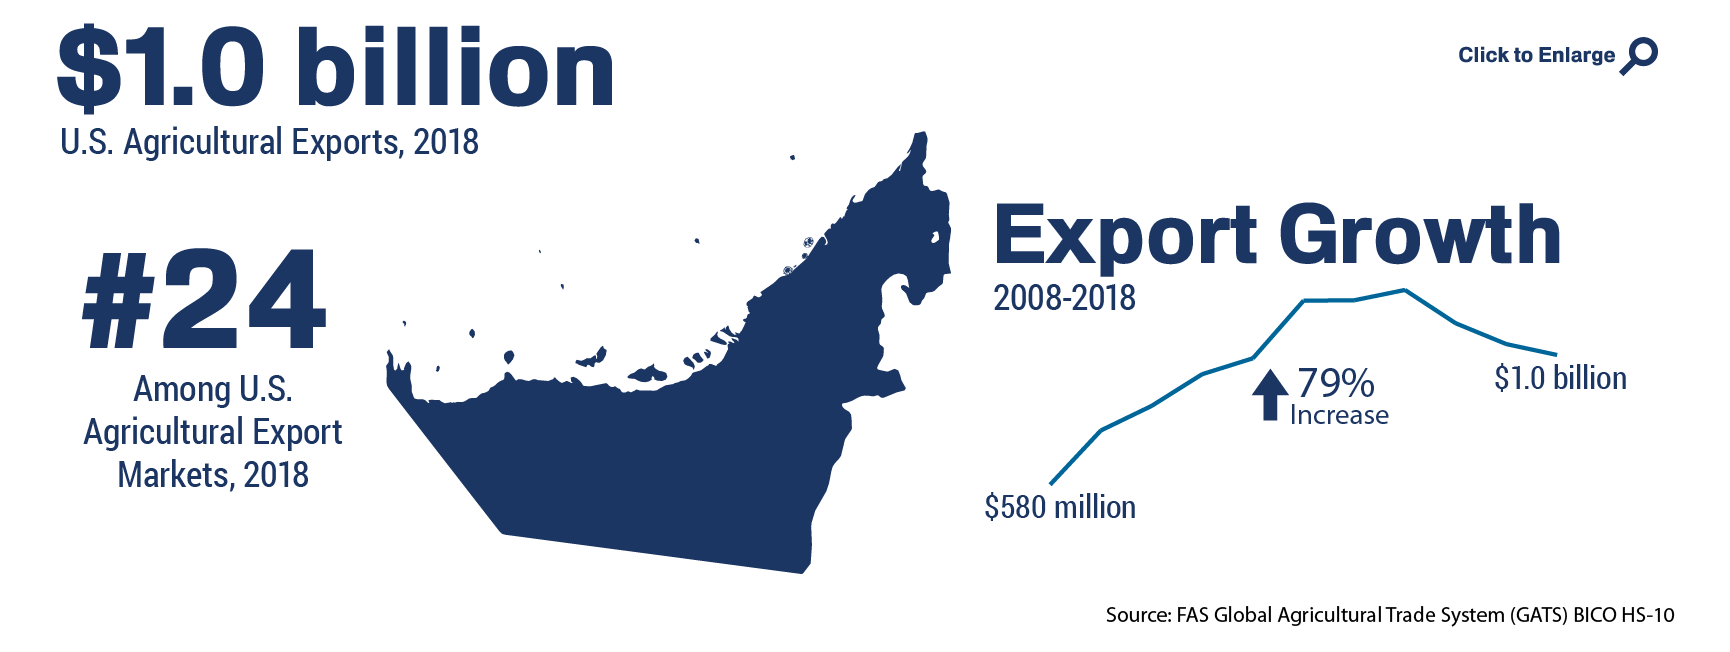 Infographic showing the ranking and total of U.S. agricultural trade to United Arab Emirates in 2018